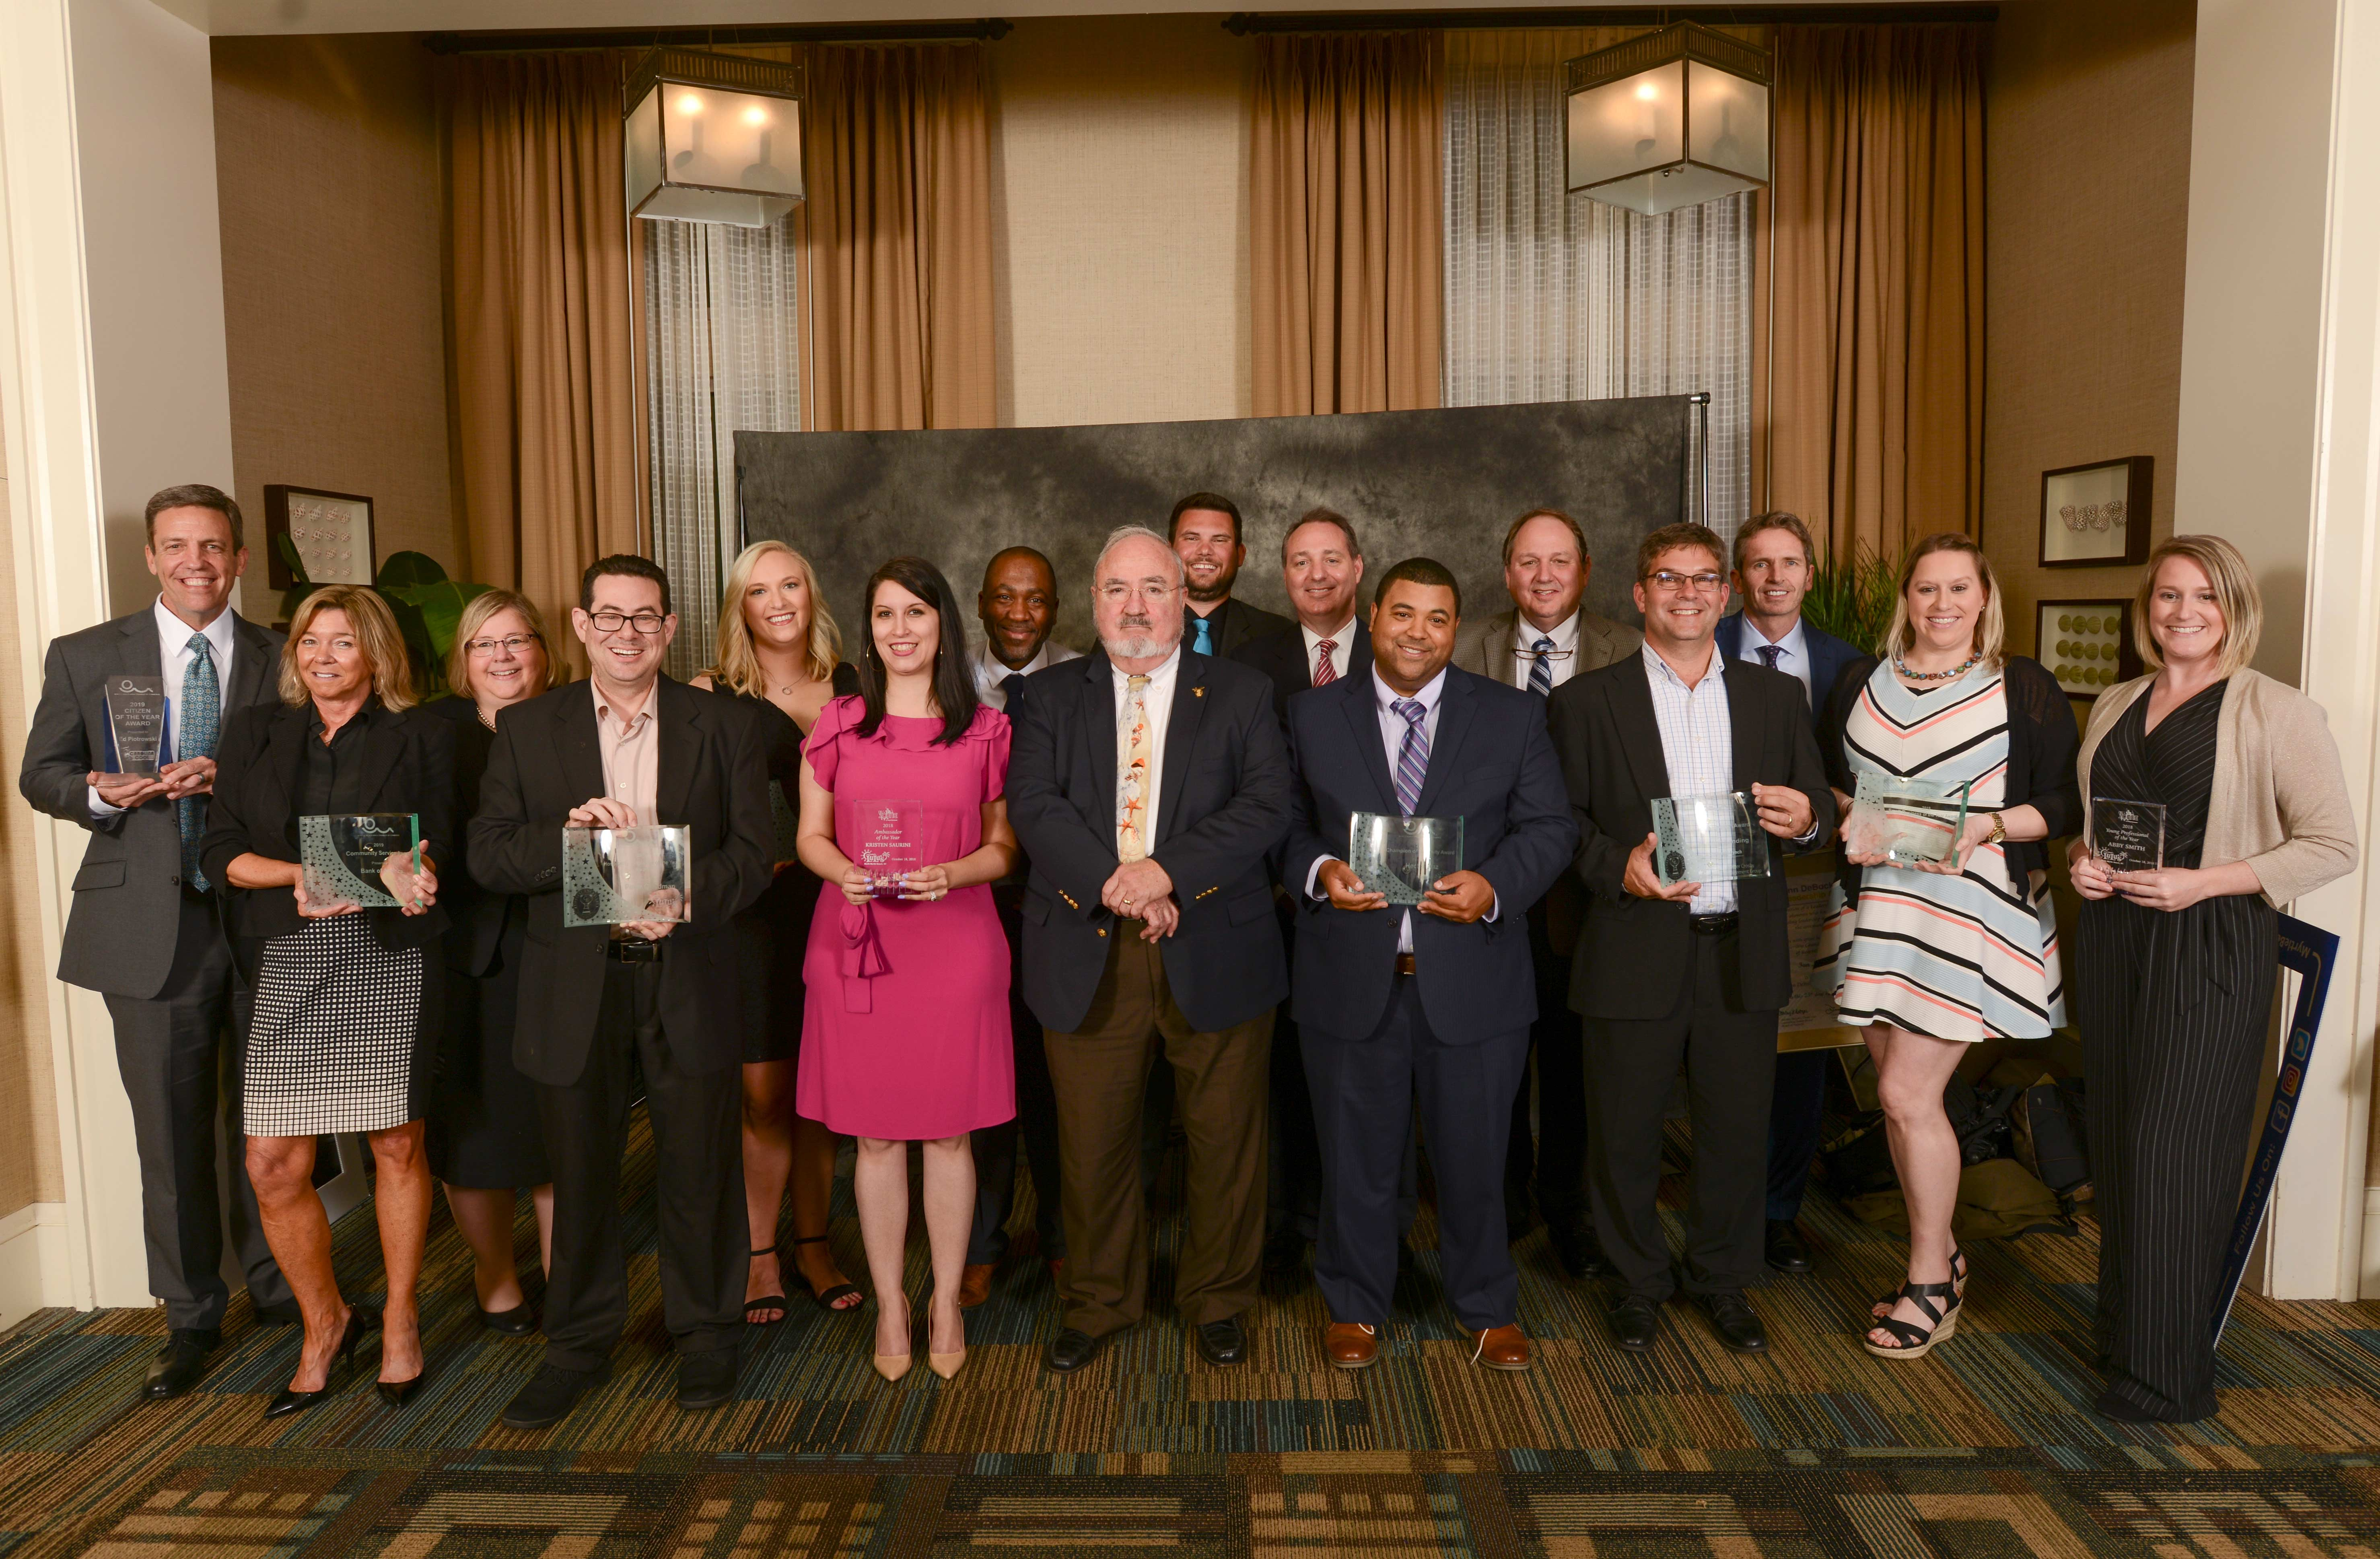 Photo of the 2019 Annual Meeting award winners